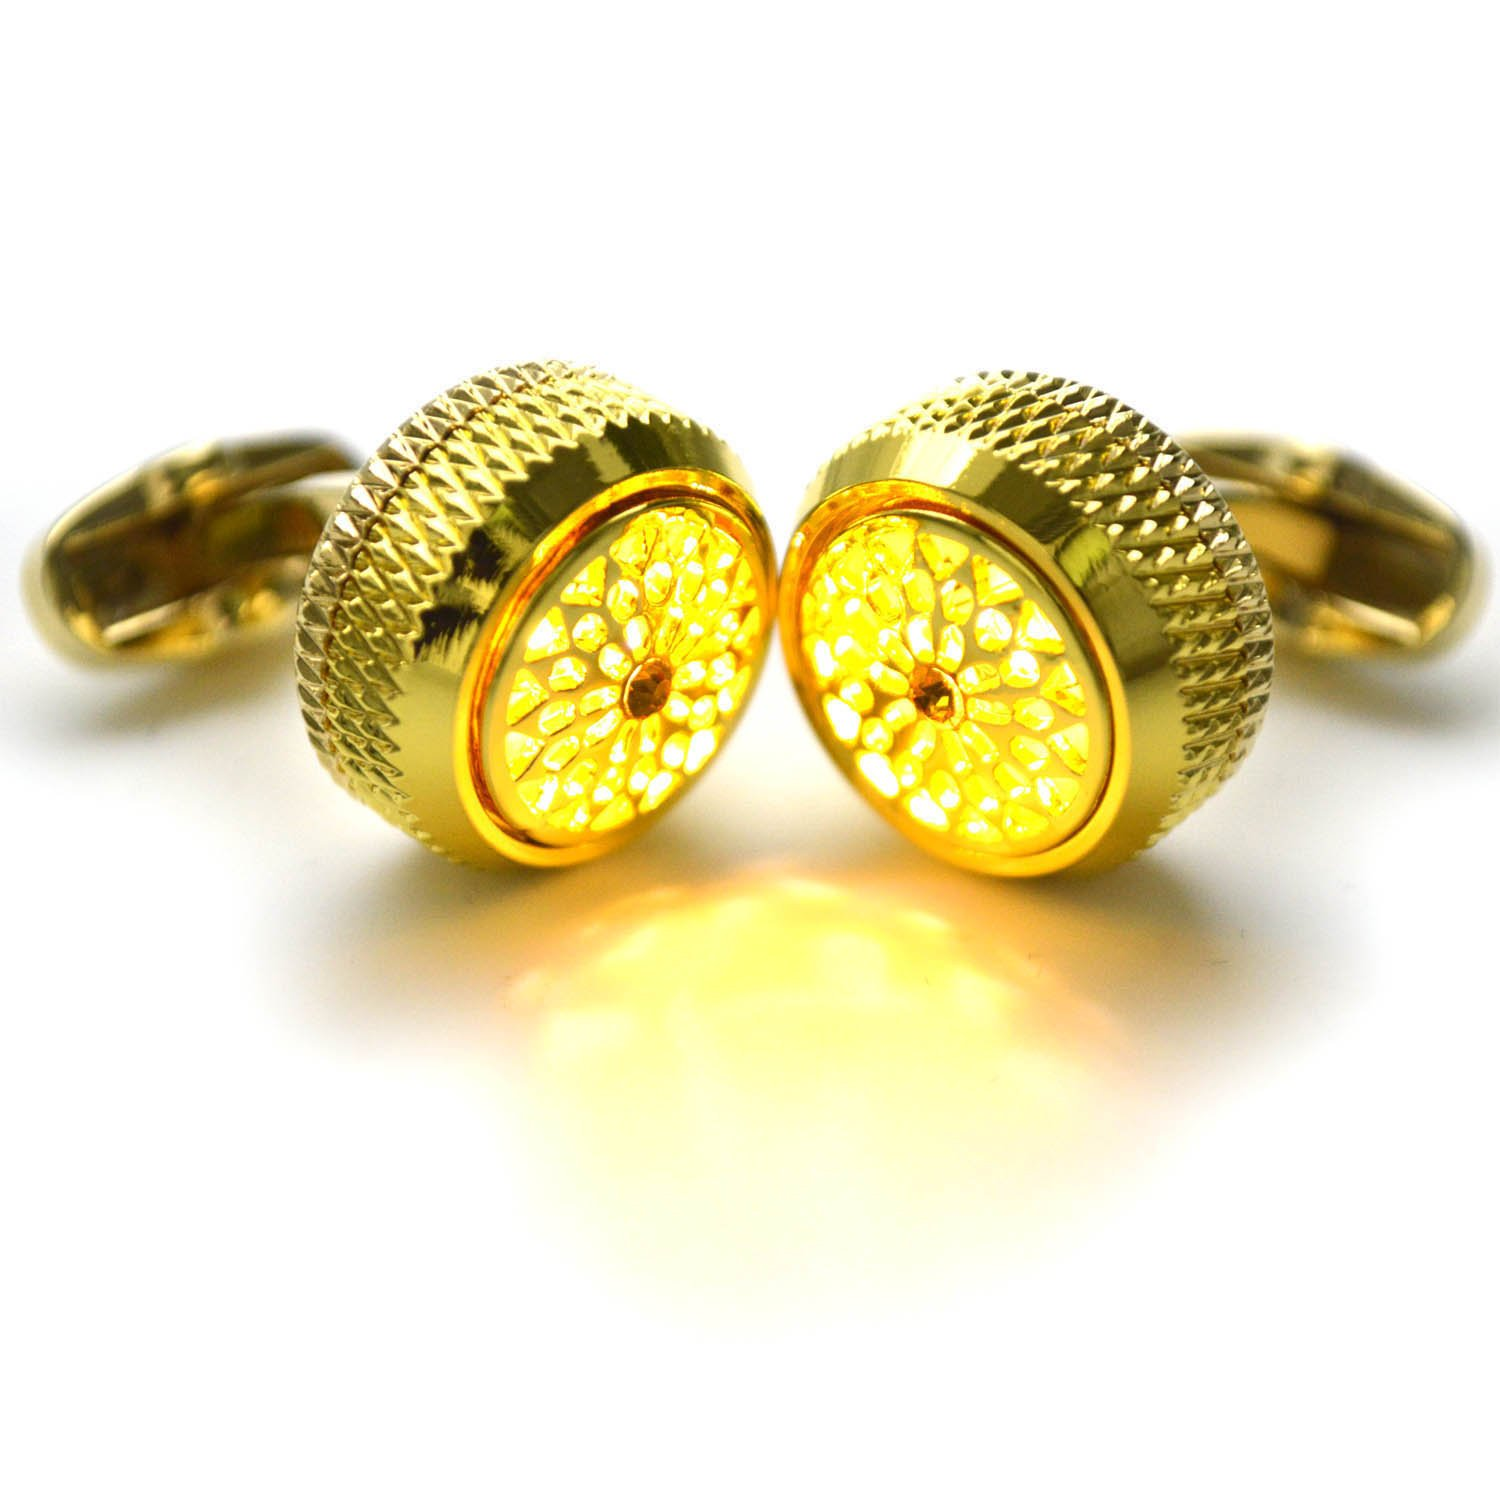 WSHYKJ Men's Cufflinks LED Cufflinks Cufflinks Glowing Cufflinks Night Flashing Gemstone Light Cufflinks Stylish Cufflinks Tuxedo Shirts Business Weddings Groomsmen's Day Party (Yellow)